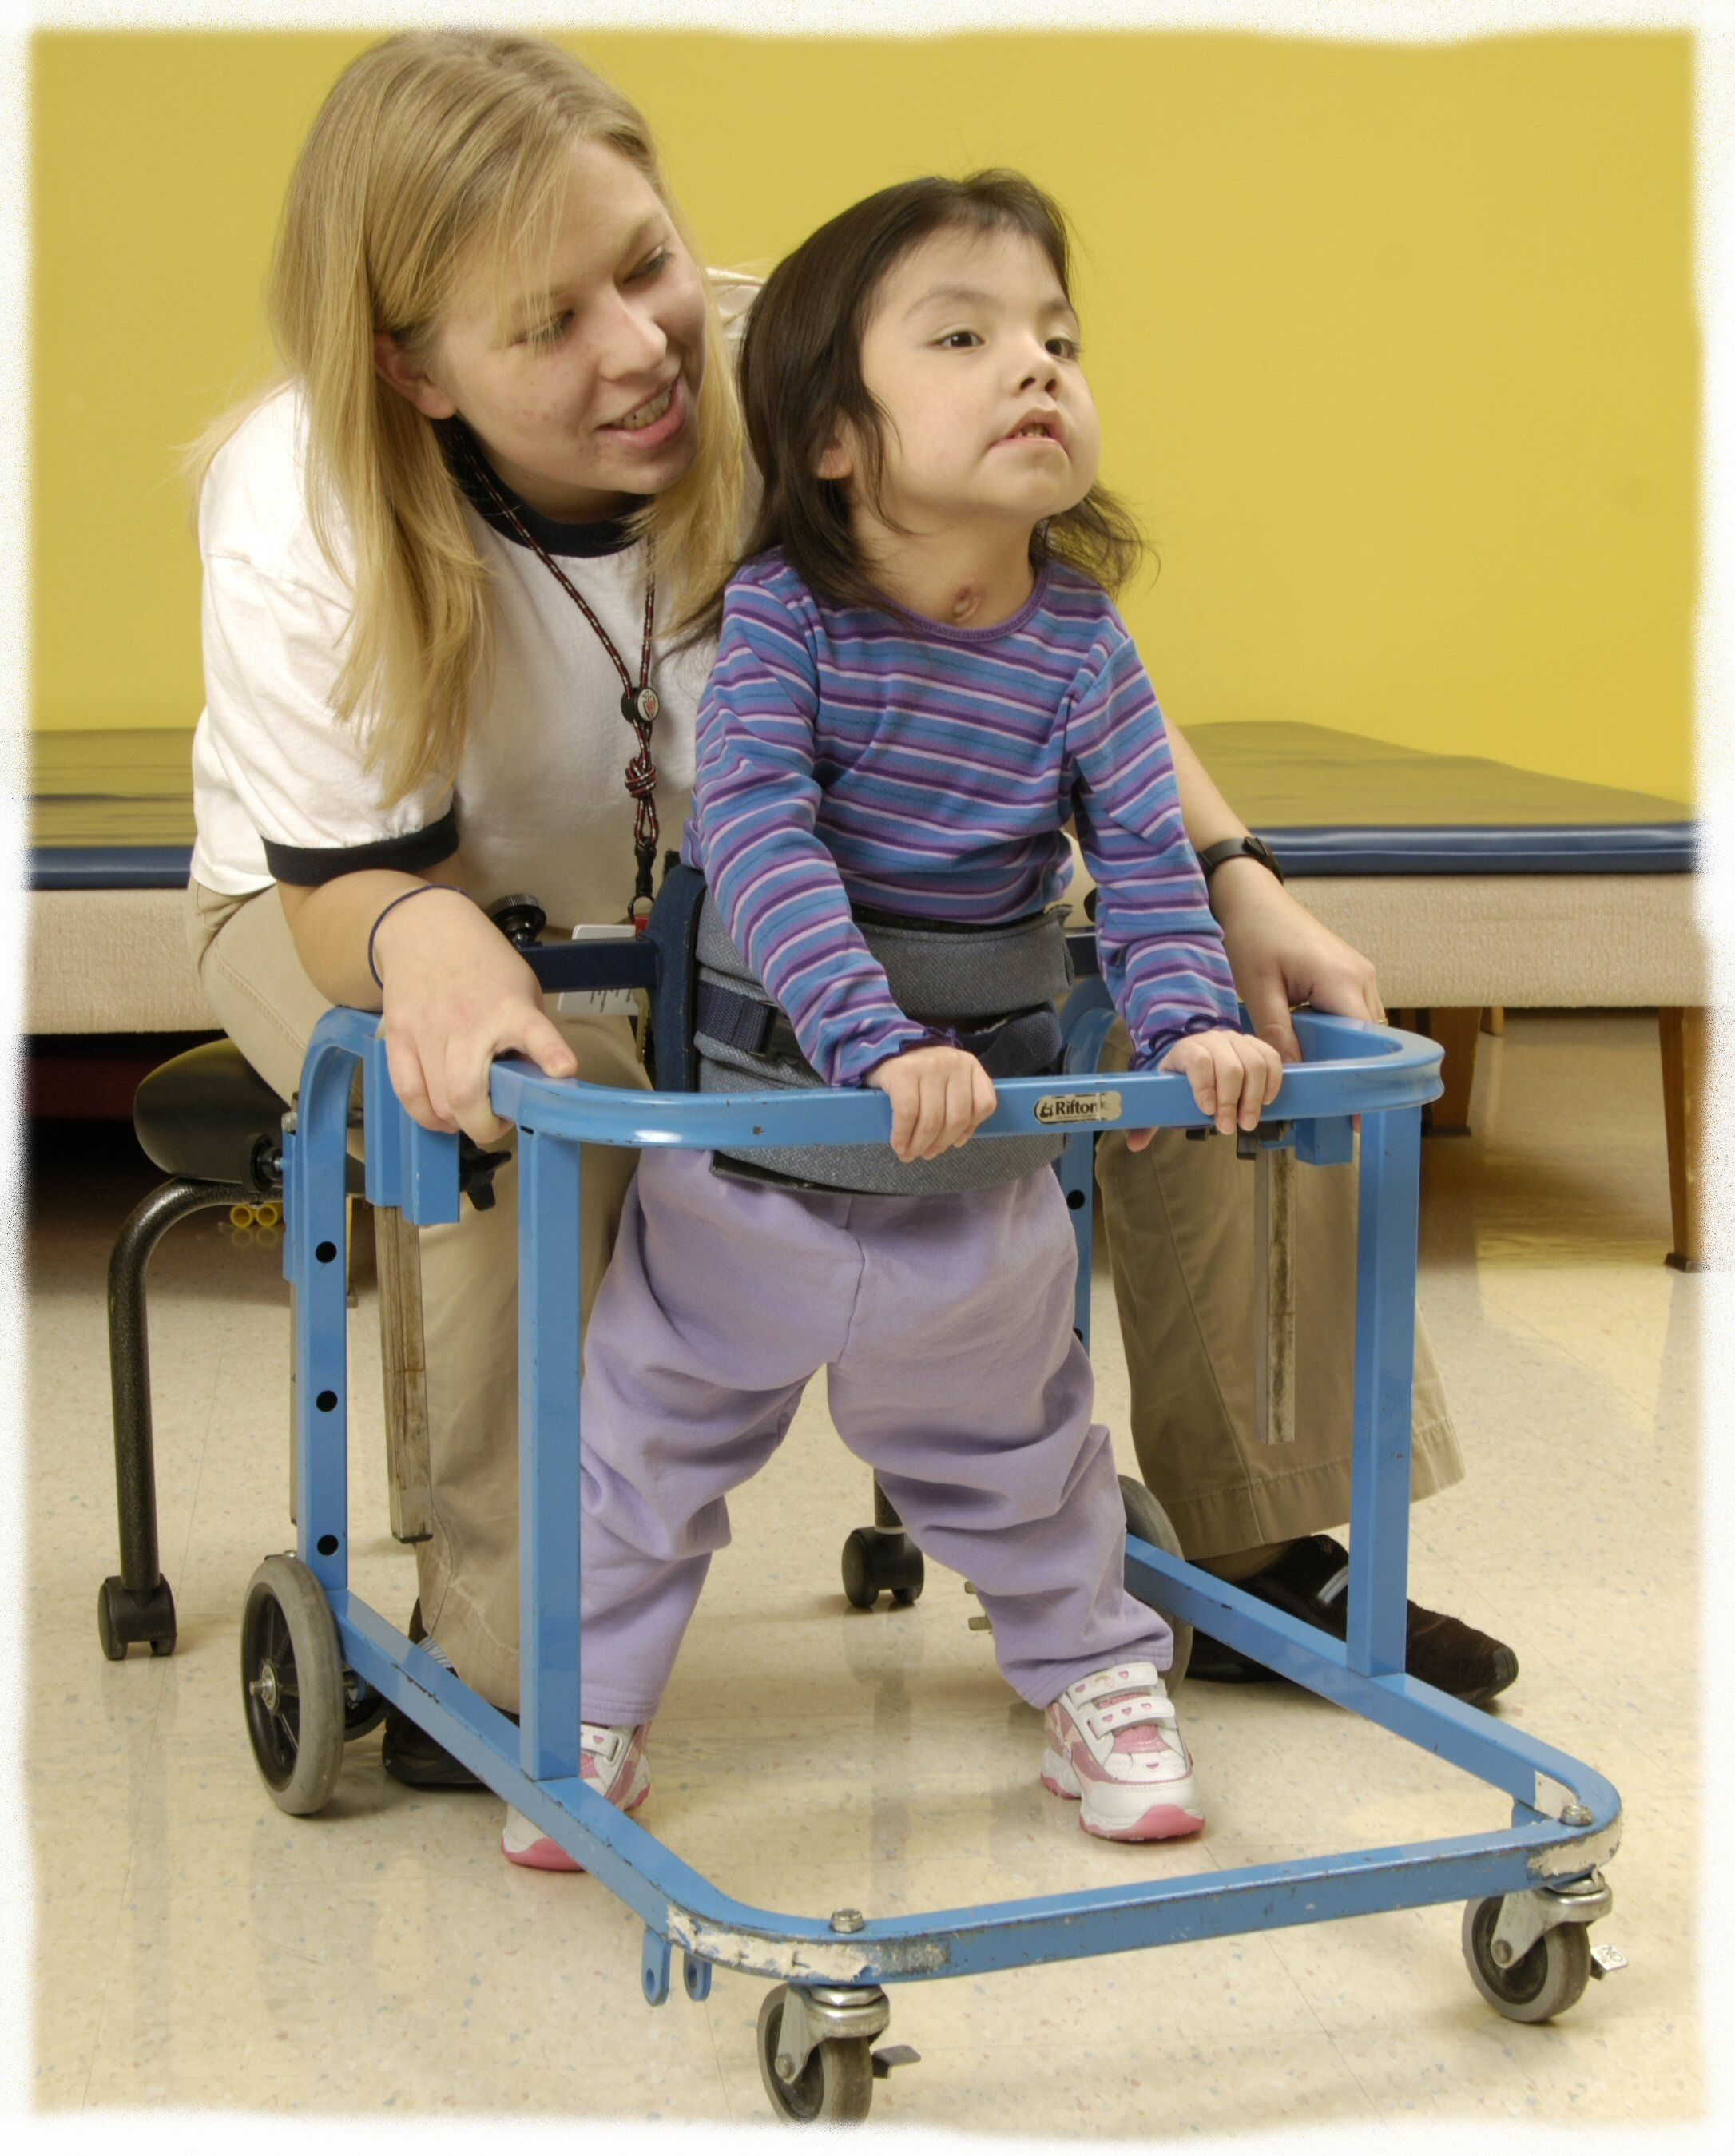 Cerebral palsy physical therapy - I Hope To Work As A Physical Therapist In The Future I Particularly Look Forward To Helping With The Rehabilitation Of Children